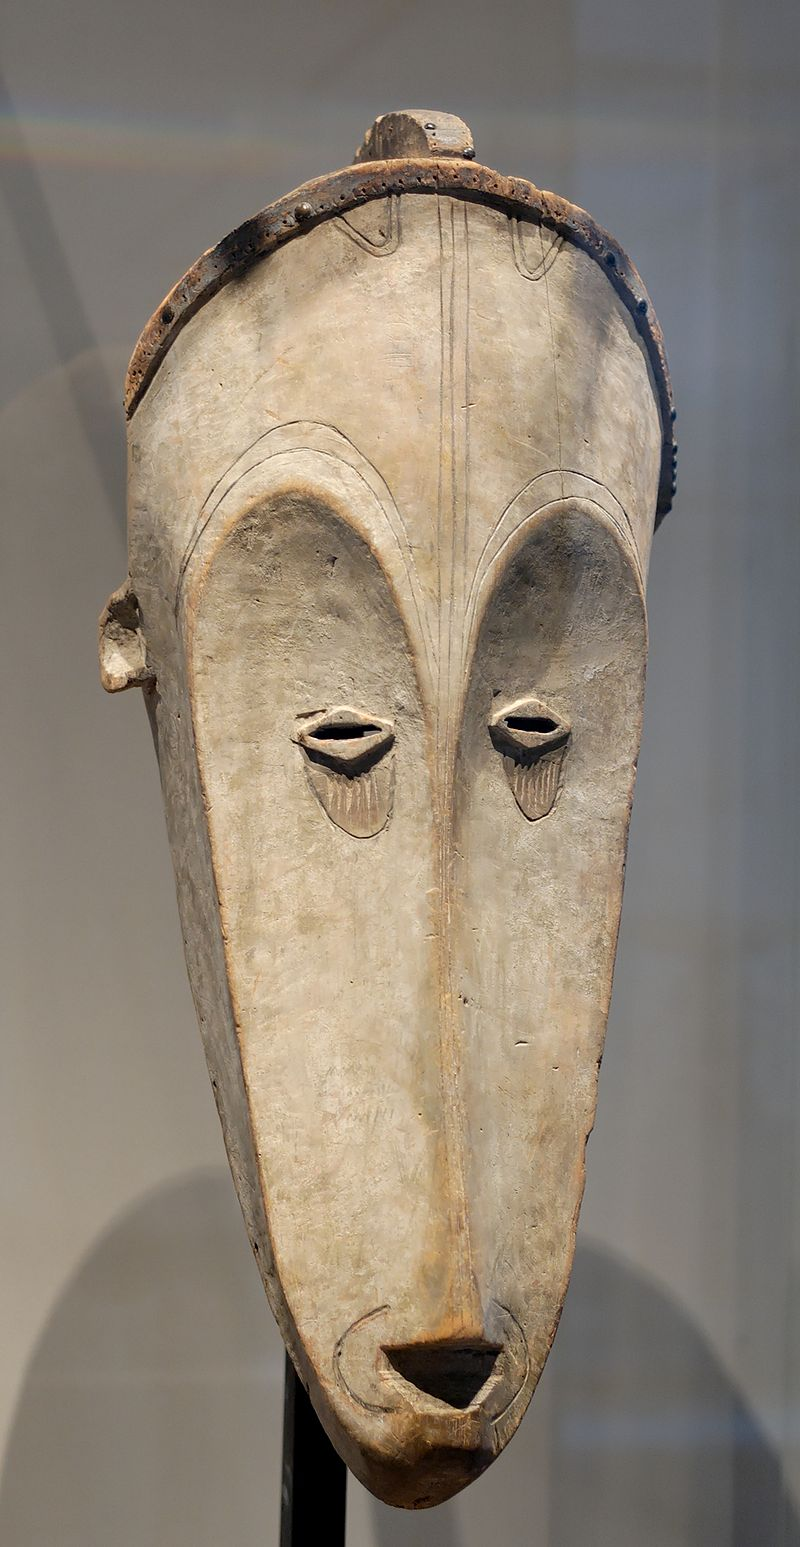 Fang mask used for the ngil ceremony, an inquisitorial search for sorcerers, Gabon, 19th Century, Louvre Museum, Paris.